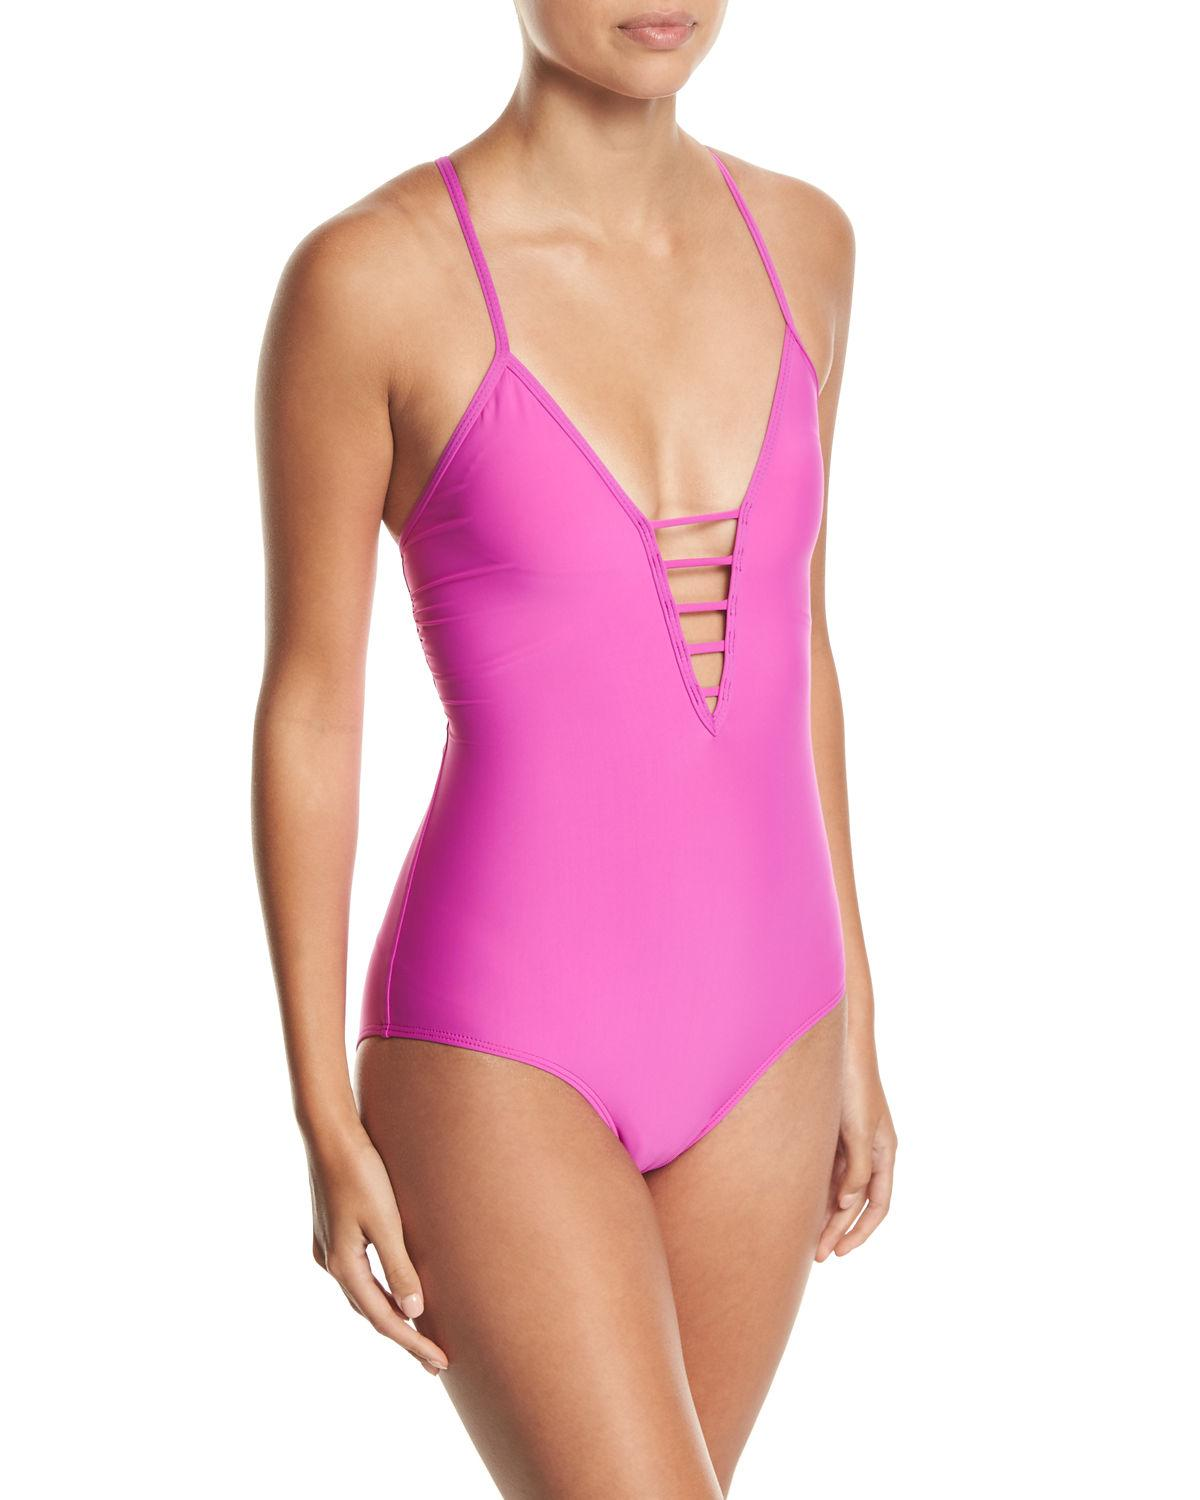 953d7129c Athena Soft-cup Strappy One-piece Swimsuit in Pink - Lyst